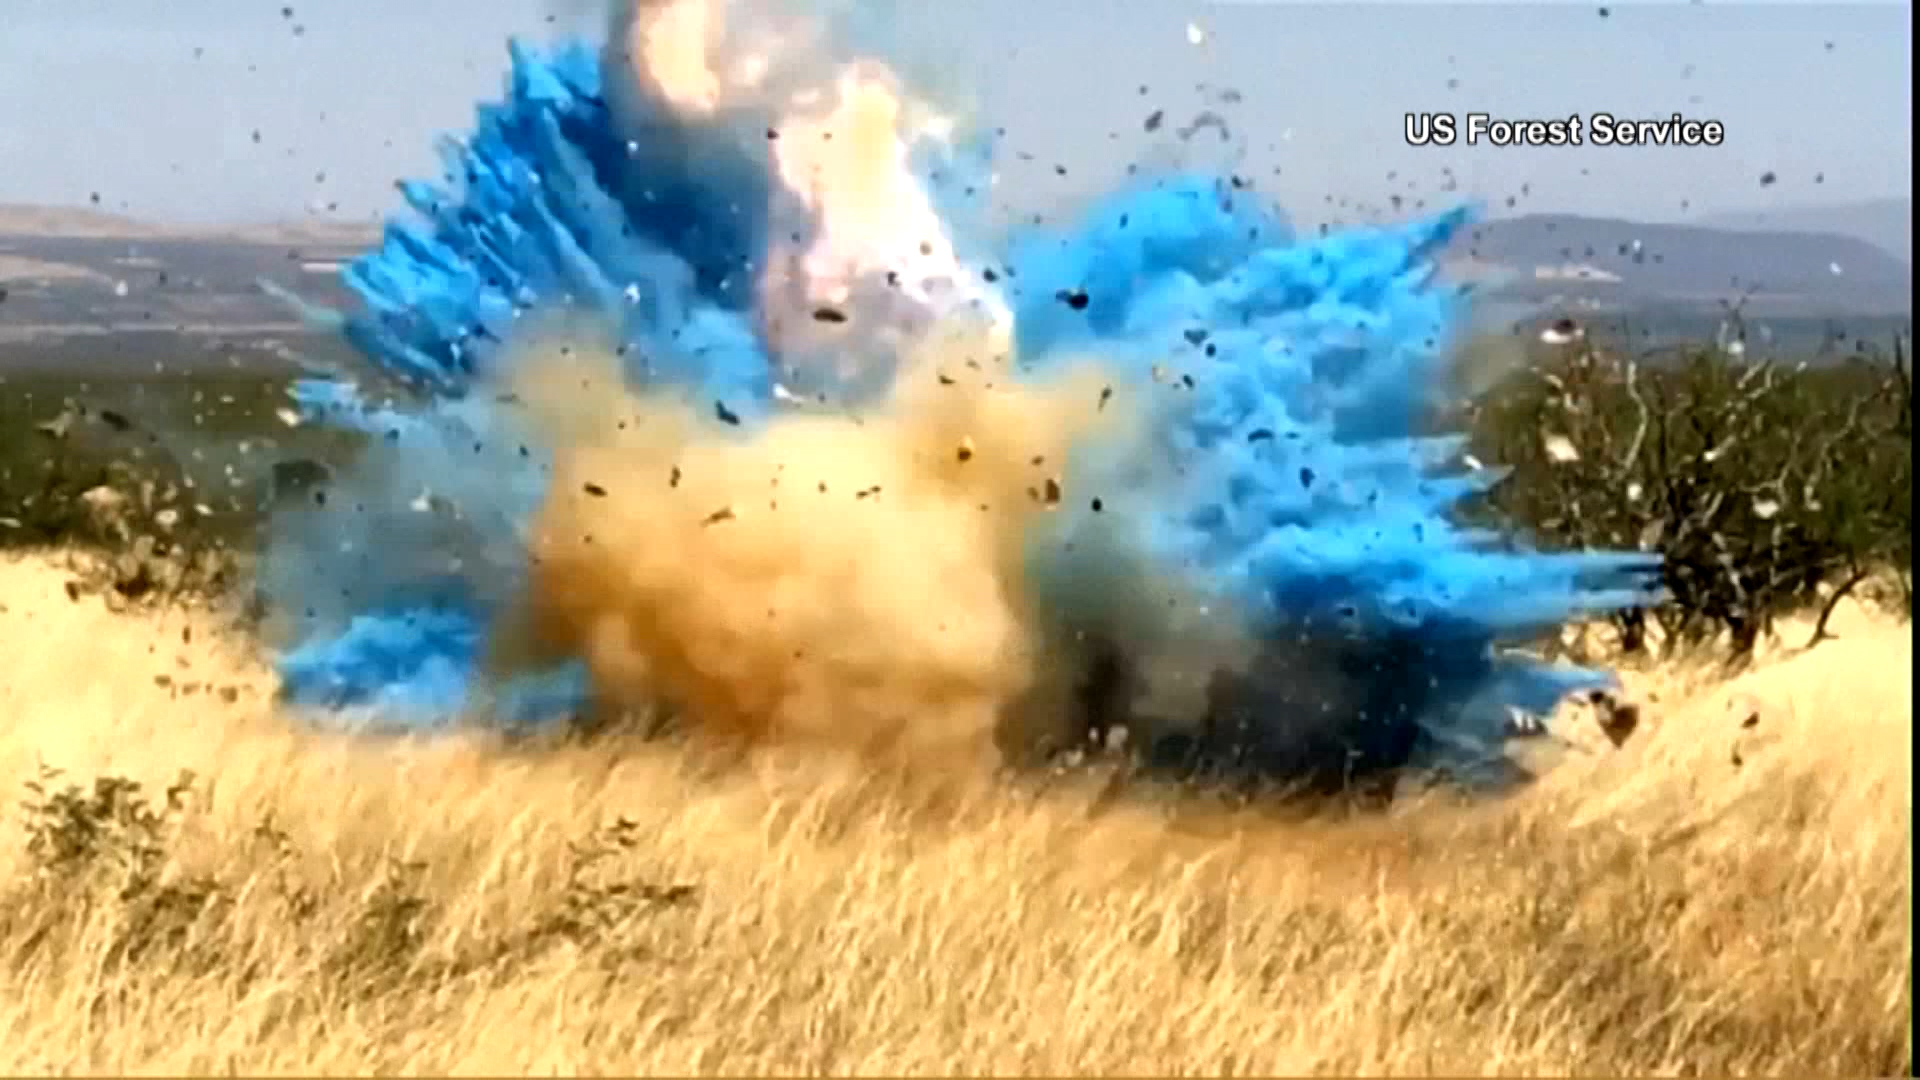 Forest Service releases video of gender reveal explosion that caused wildfire